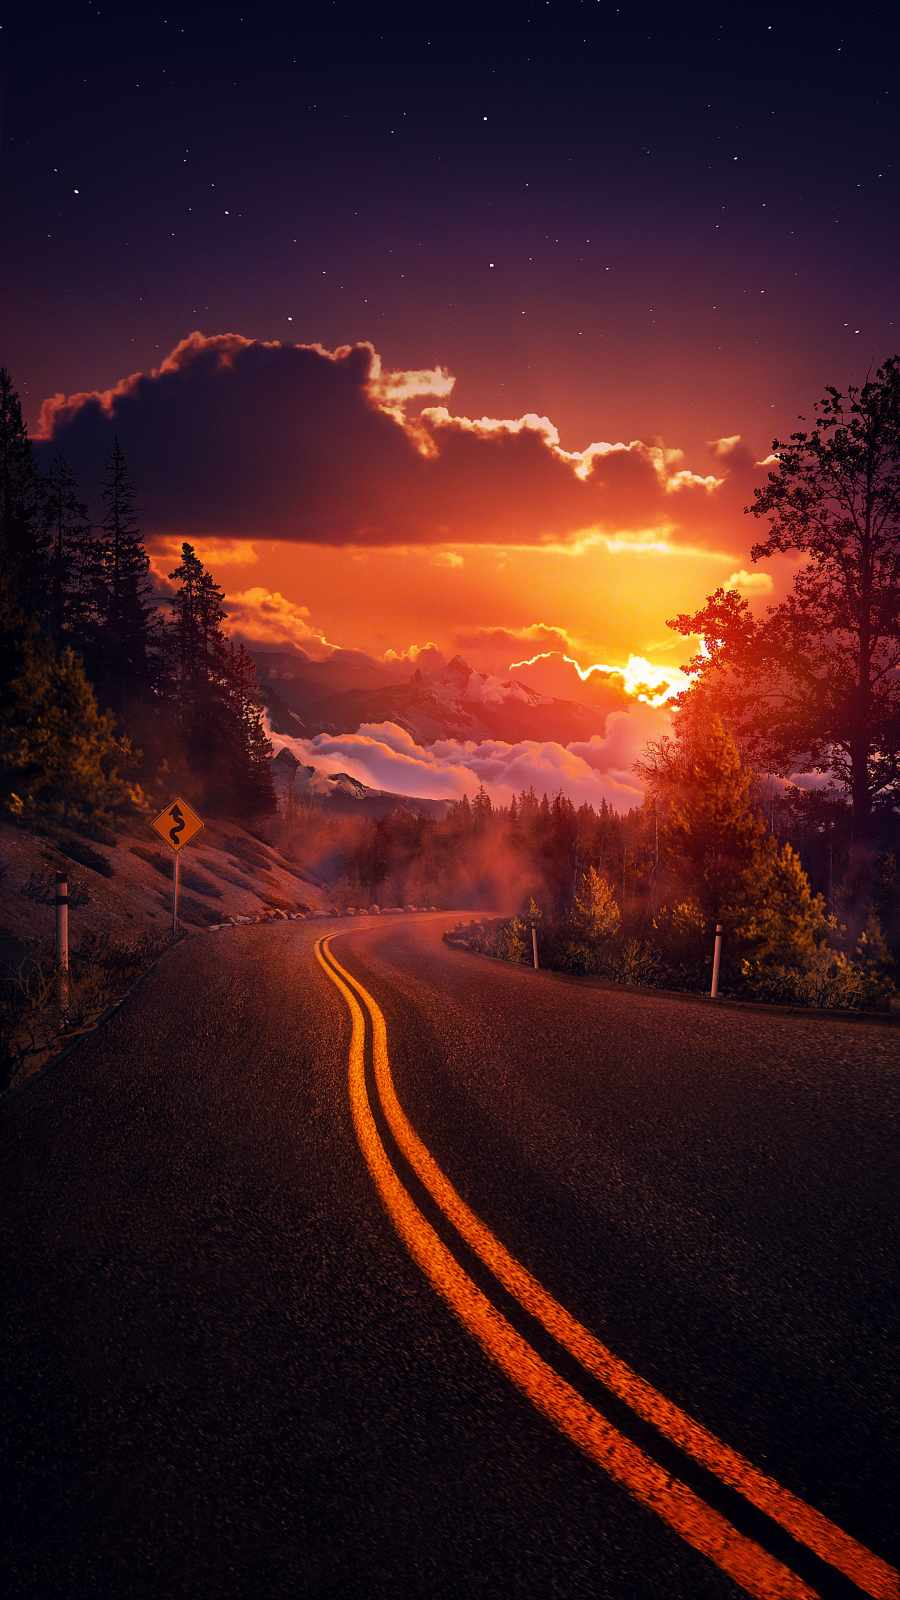 Sunset Cloudy Road